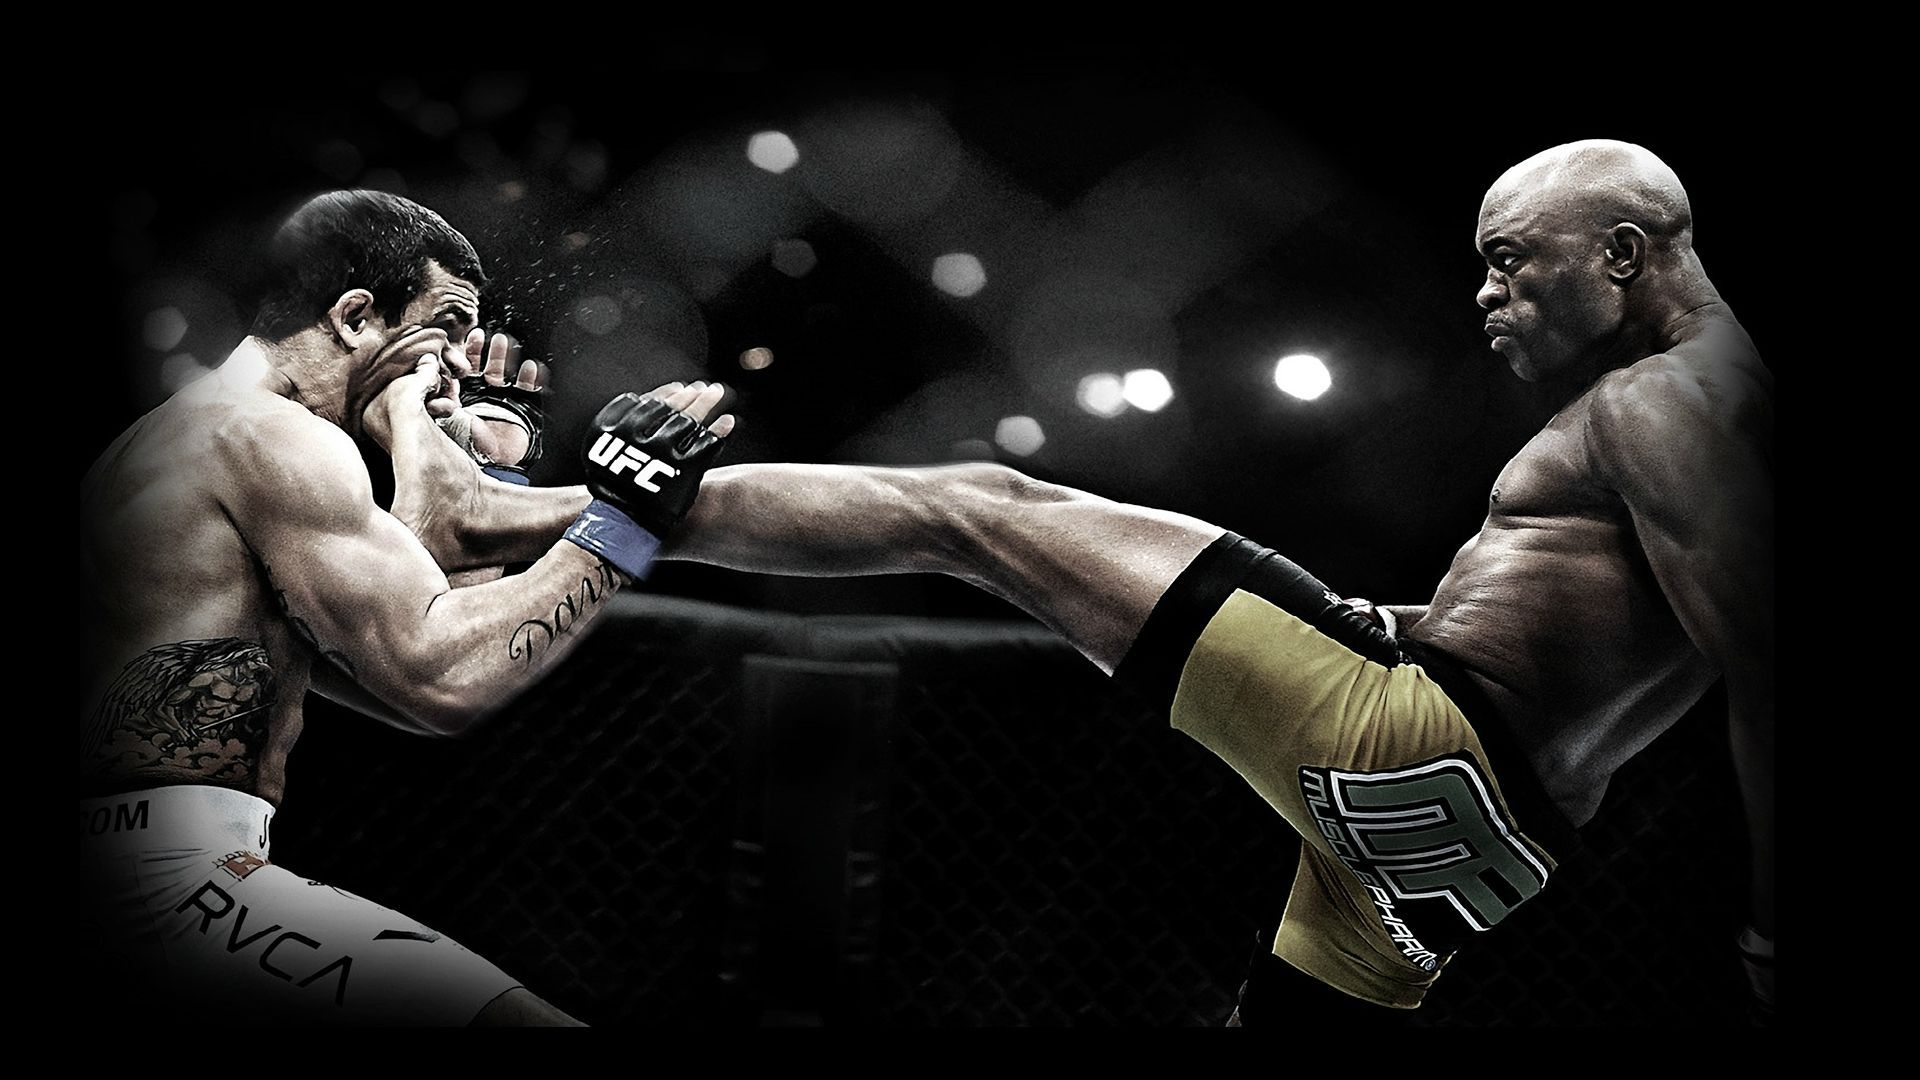 Kick Box Fight Picture For Desktop With Images Ufc Fighters